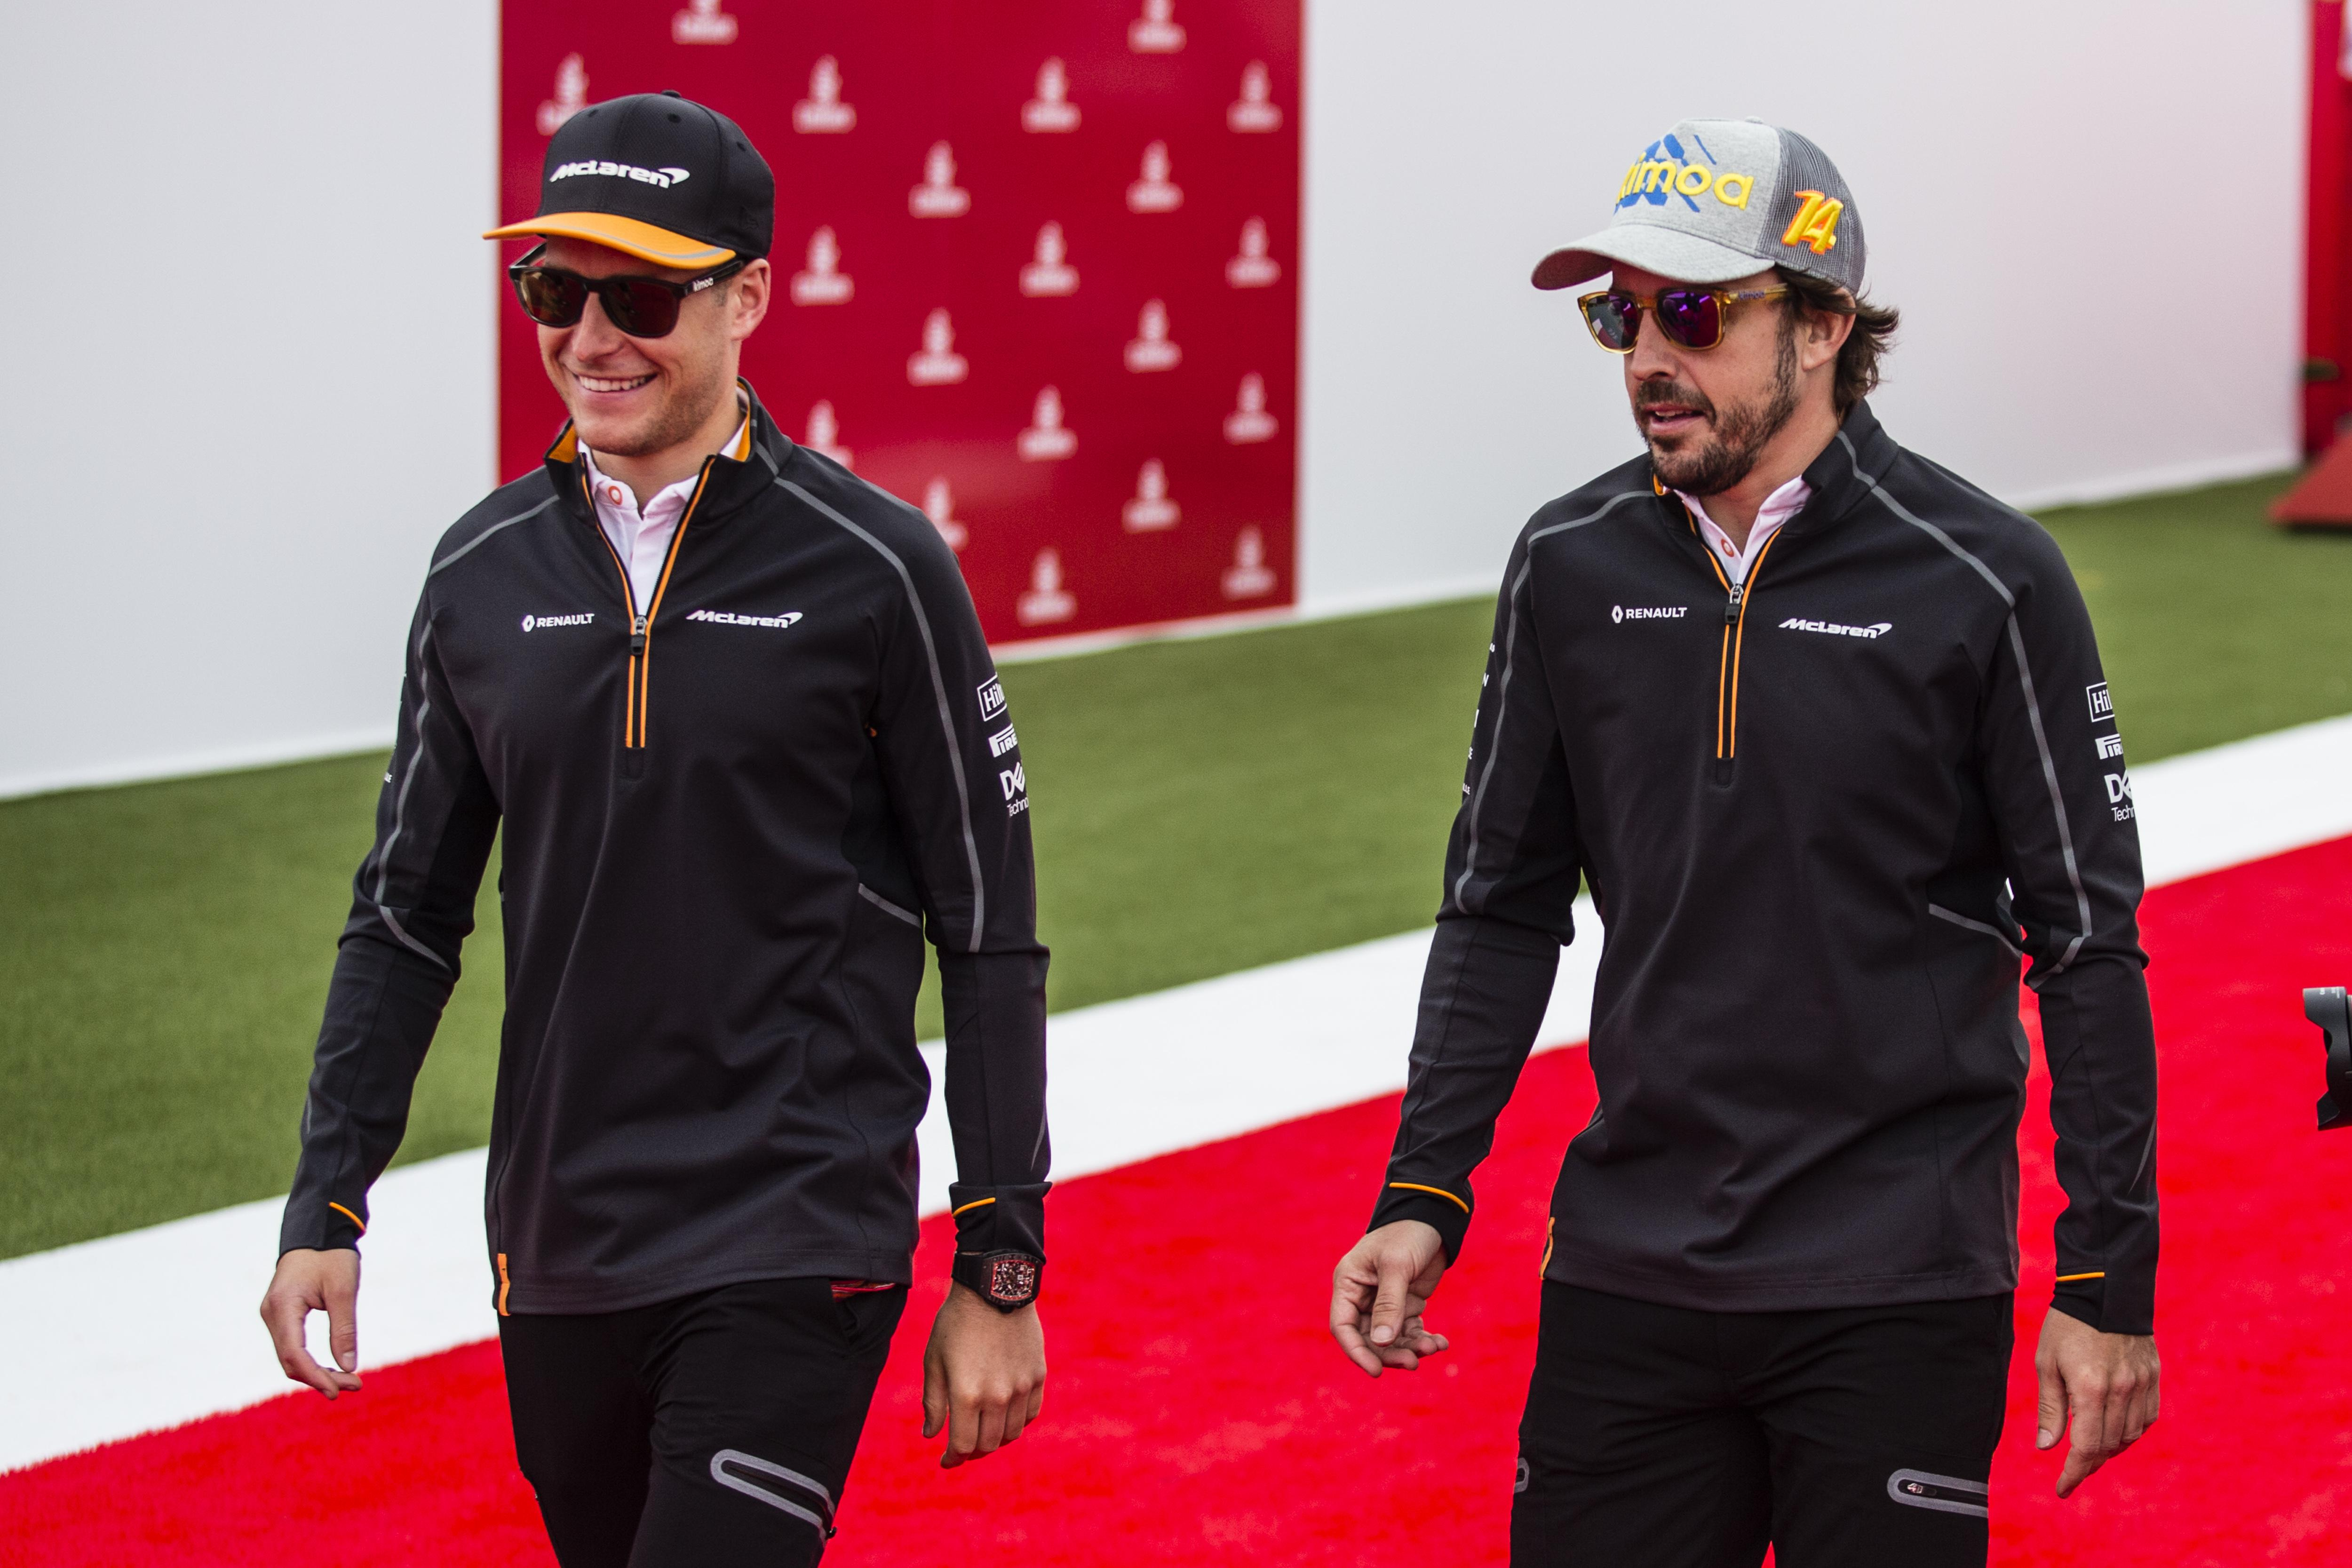 Drivers Stoffel Vandoorne, left, and Fernando Alonso will be hoping to pick up points at the French Grand Prix this weekend